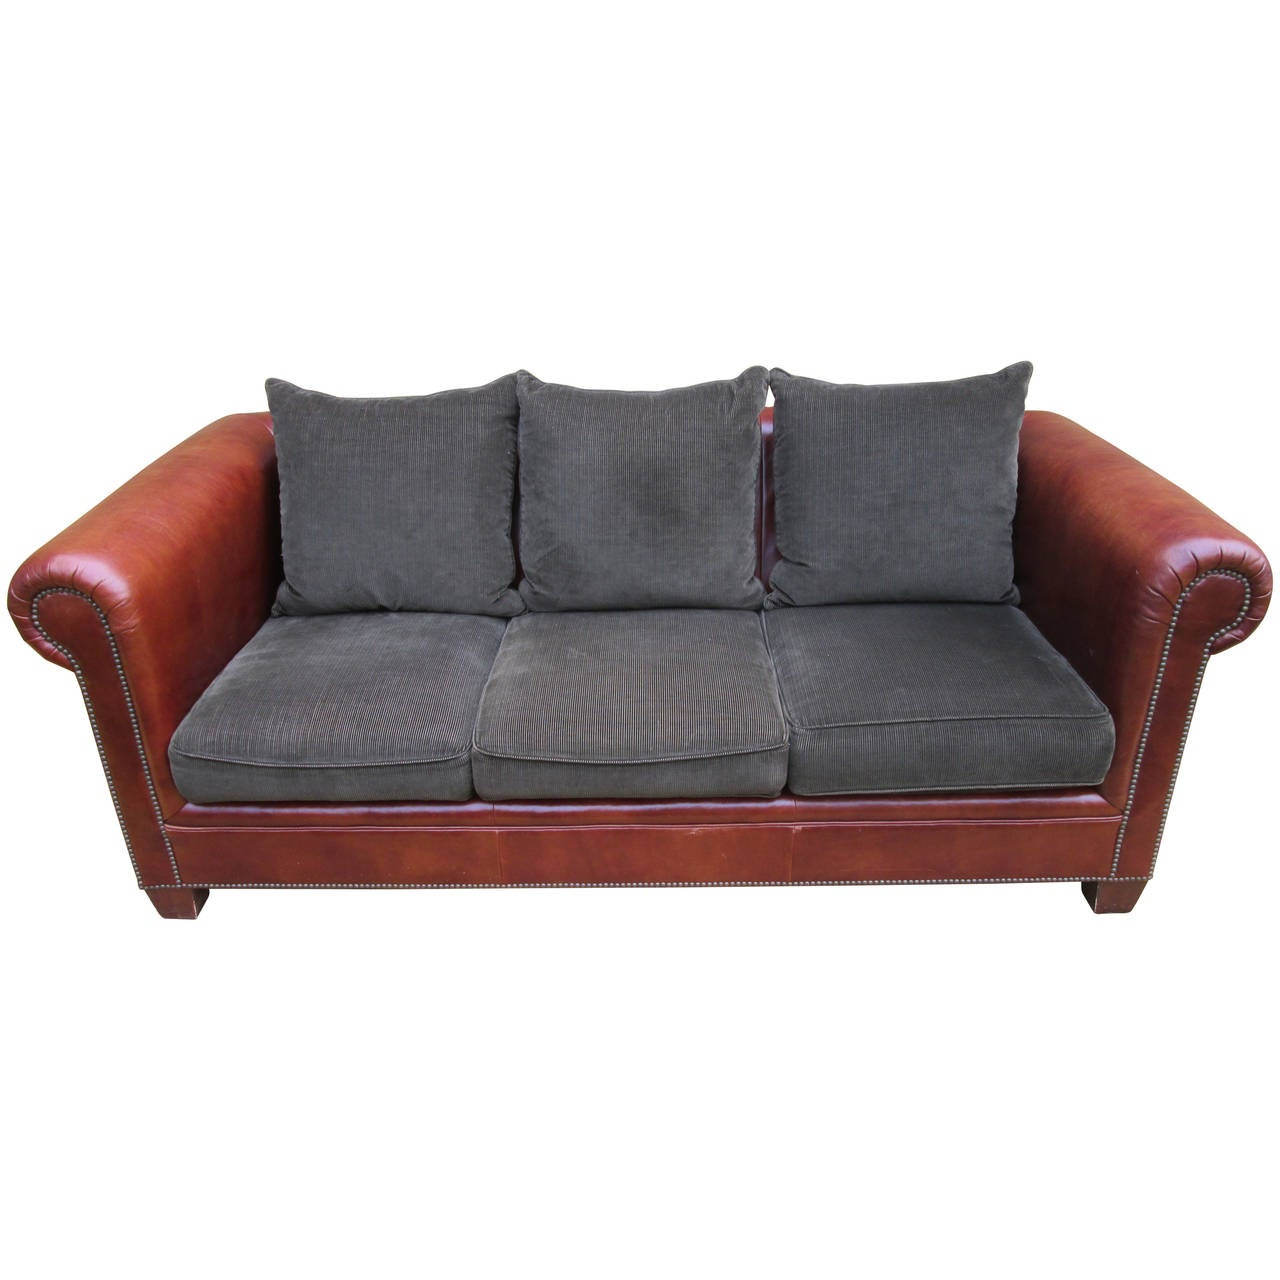 Ralph Lauren Leather Sofa At 1stdibs